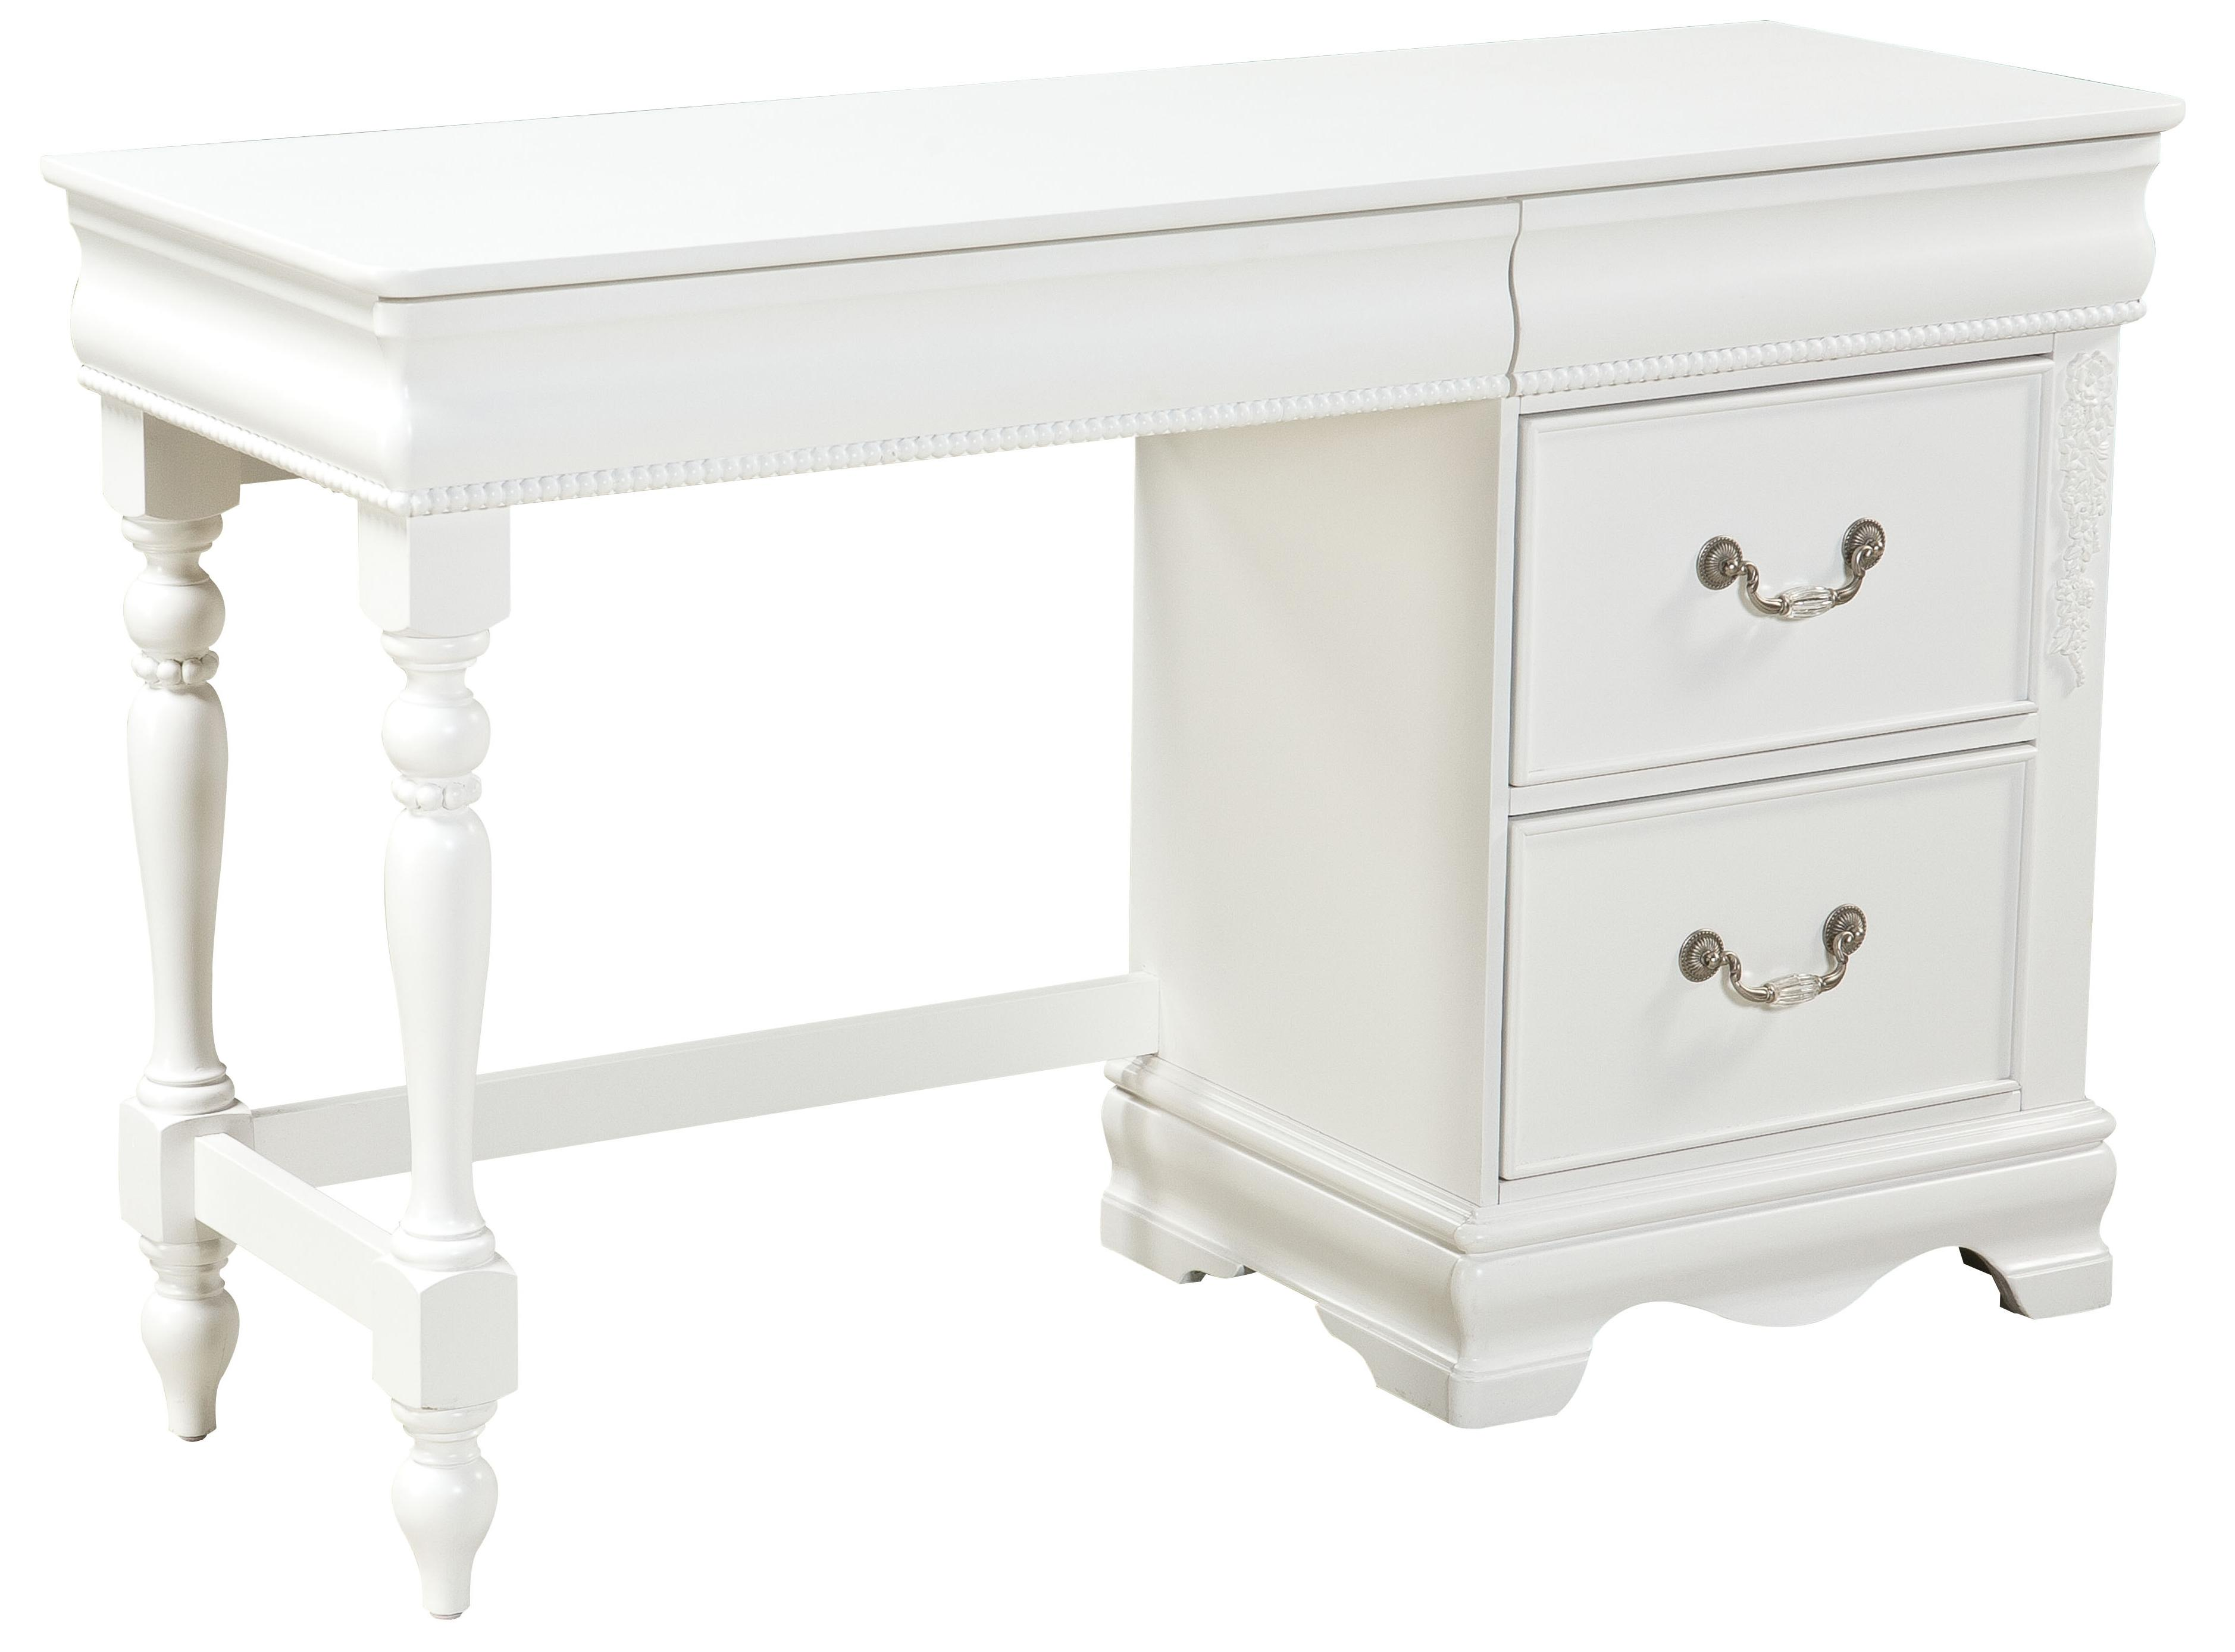 Standard Furniture Jessica Desk - Item Number: 94249